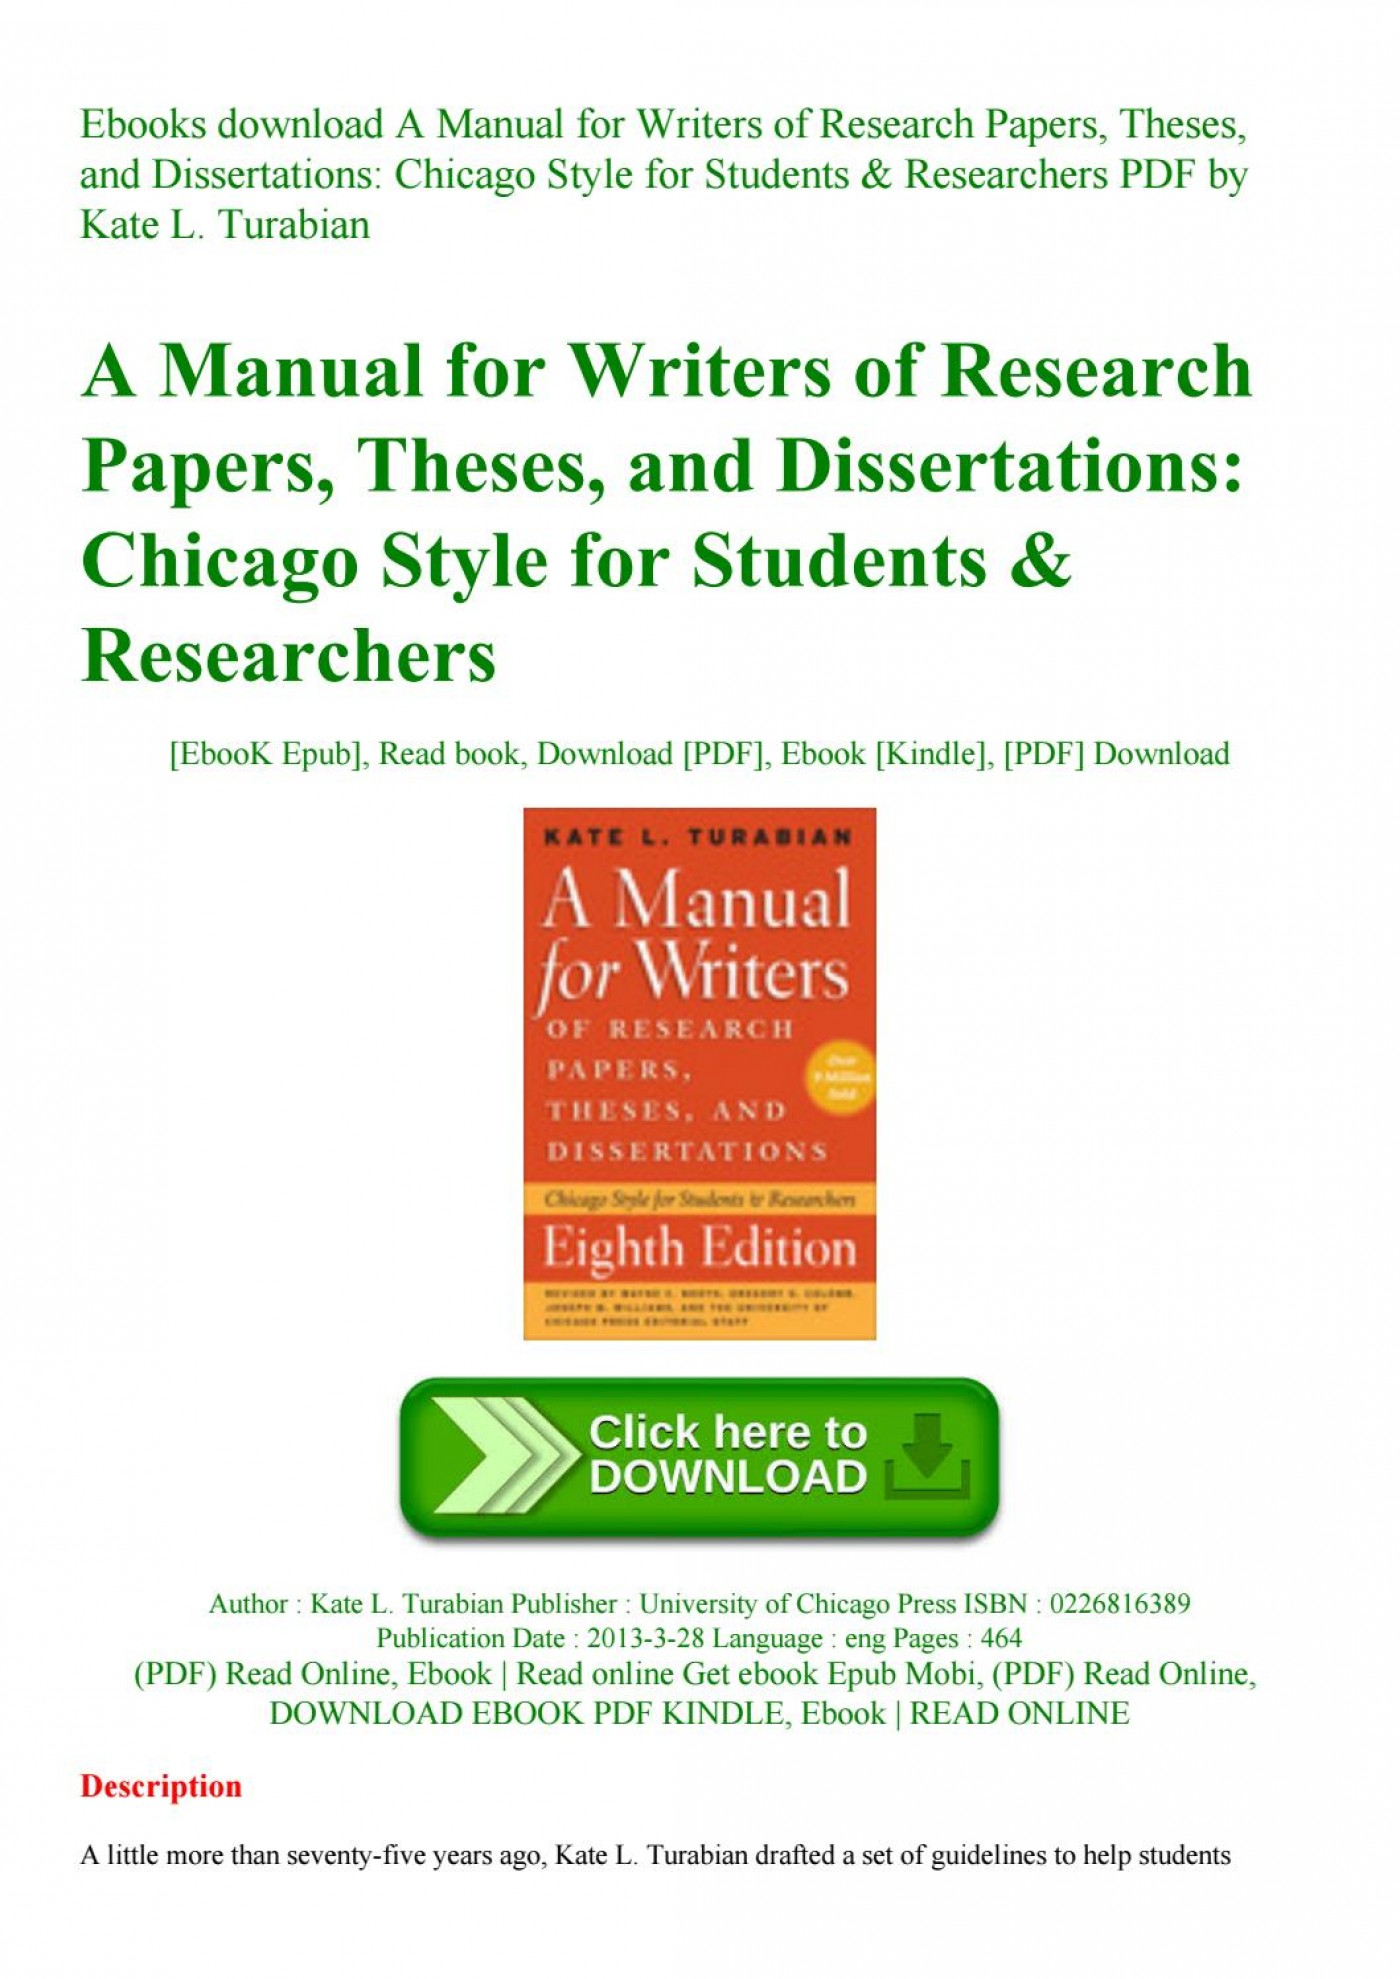 018 Page 1 Research Paper Manual For Writers Of Papers Theses And Sensational A Dissertations Ed. 8 8th Edition Ninth Pdf 1400